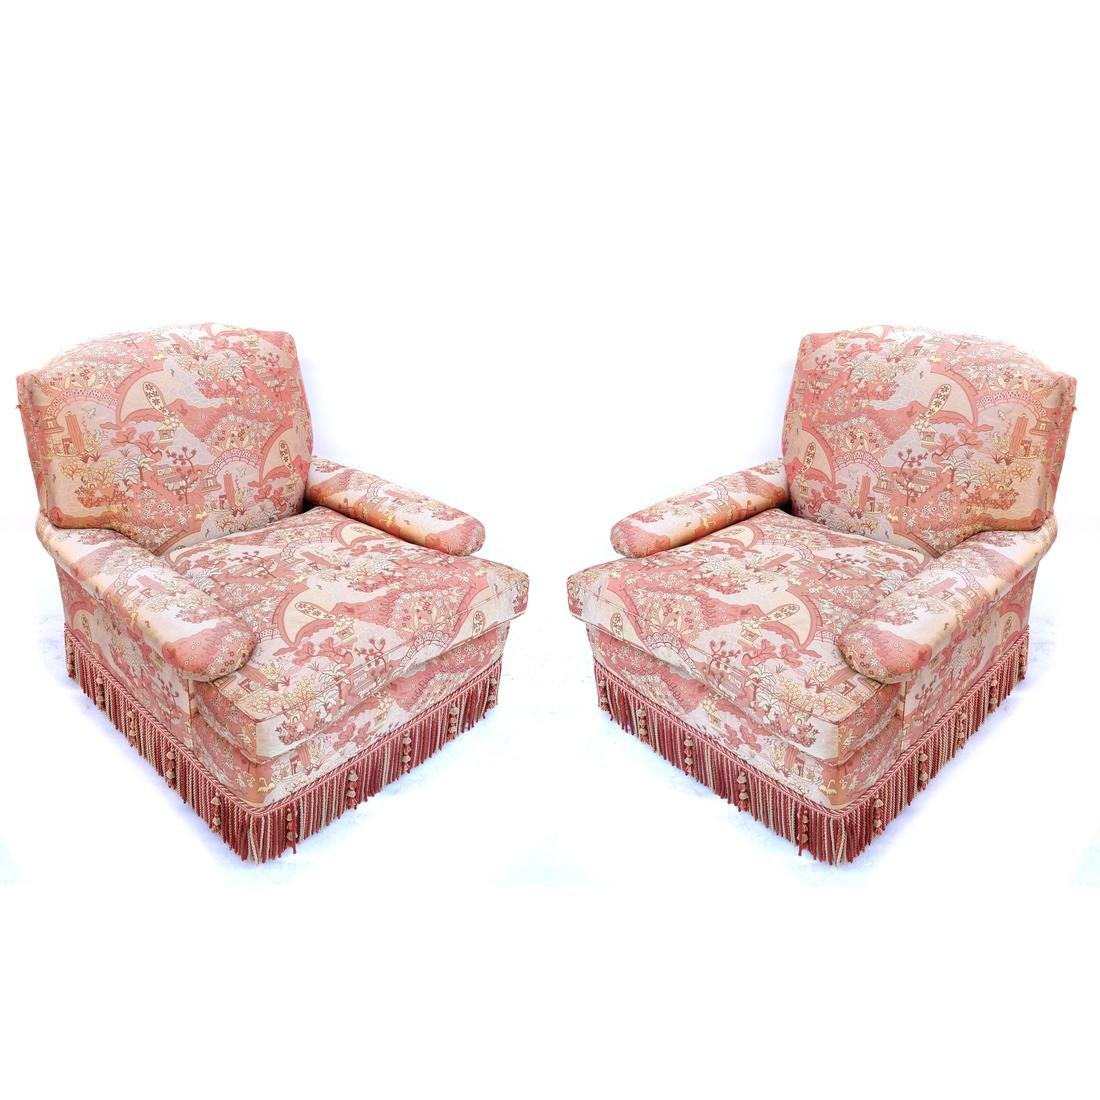 Pair of Silk Upholstered Club Chairs